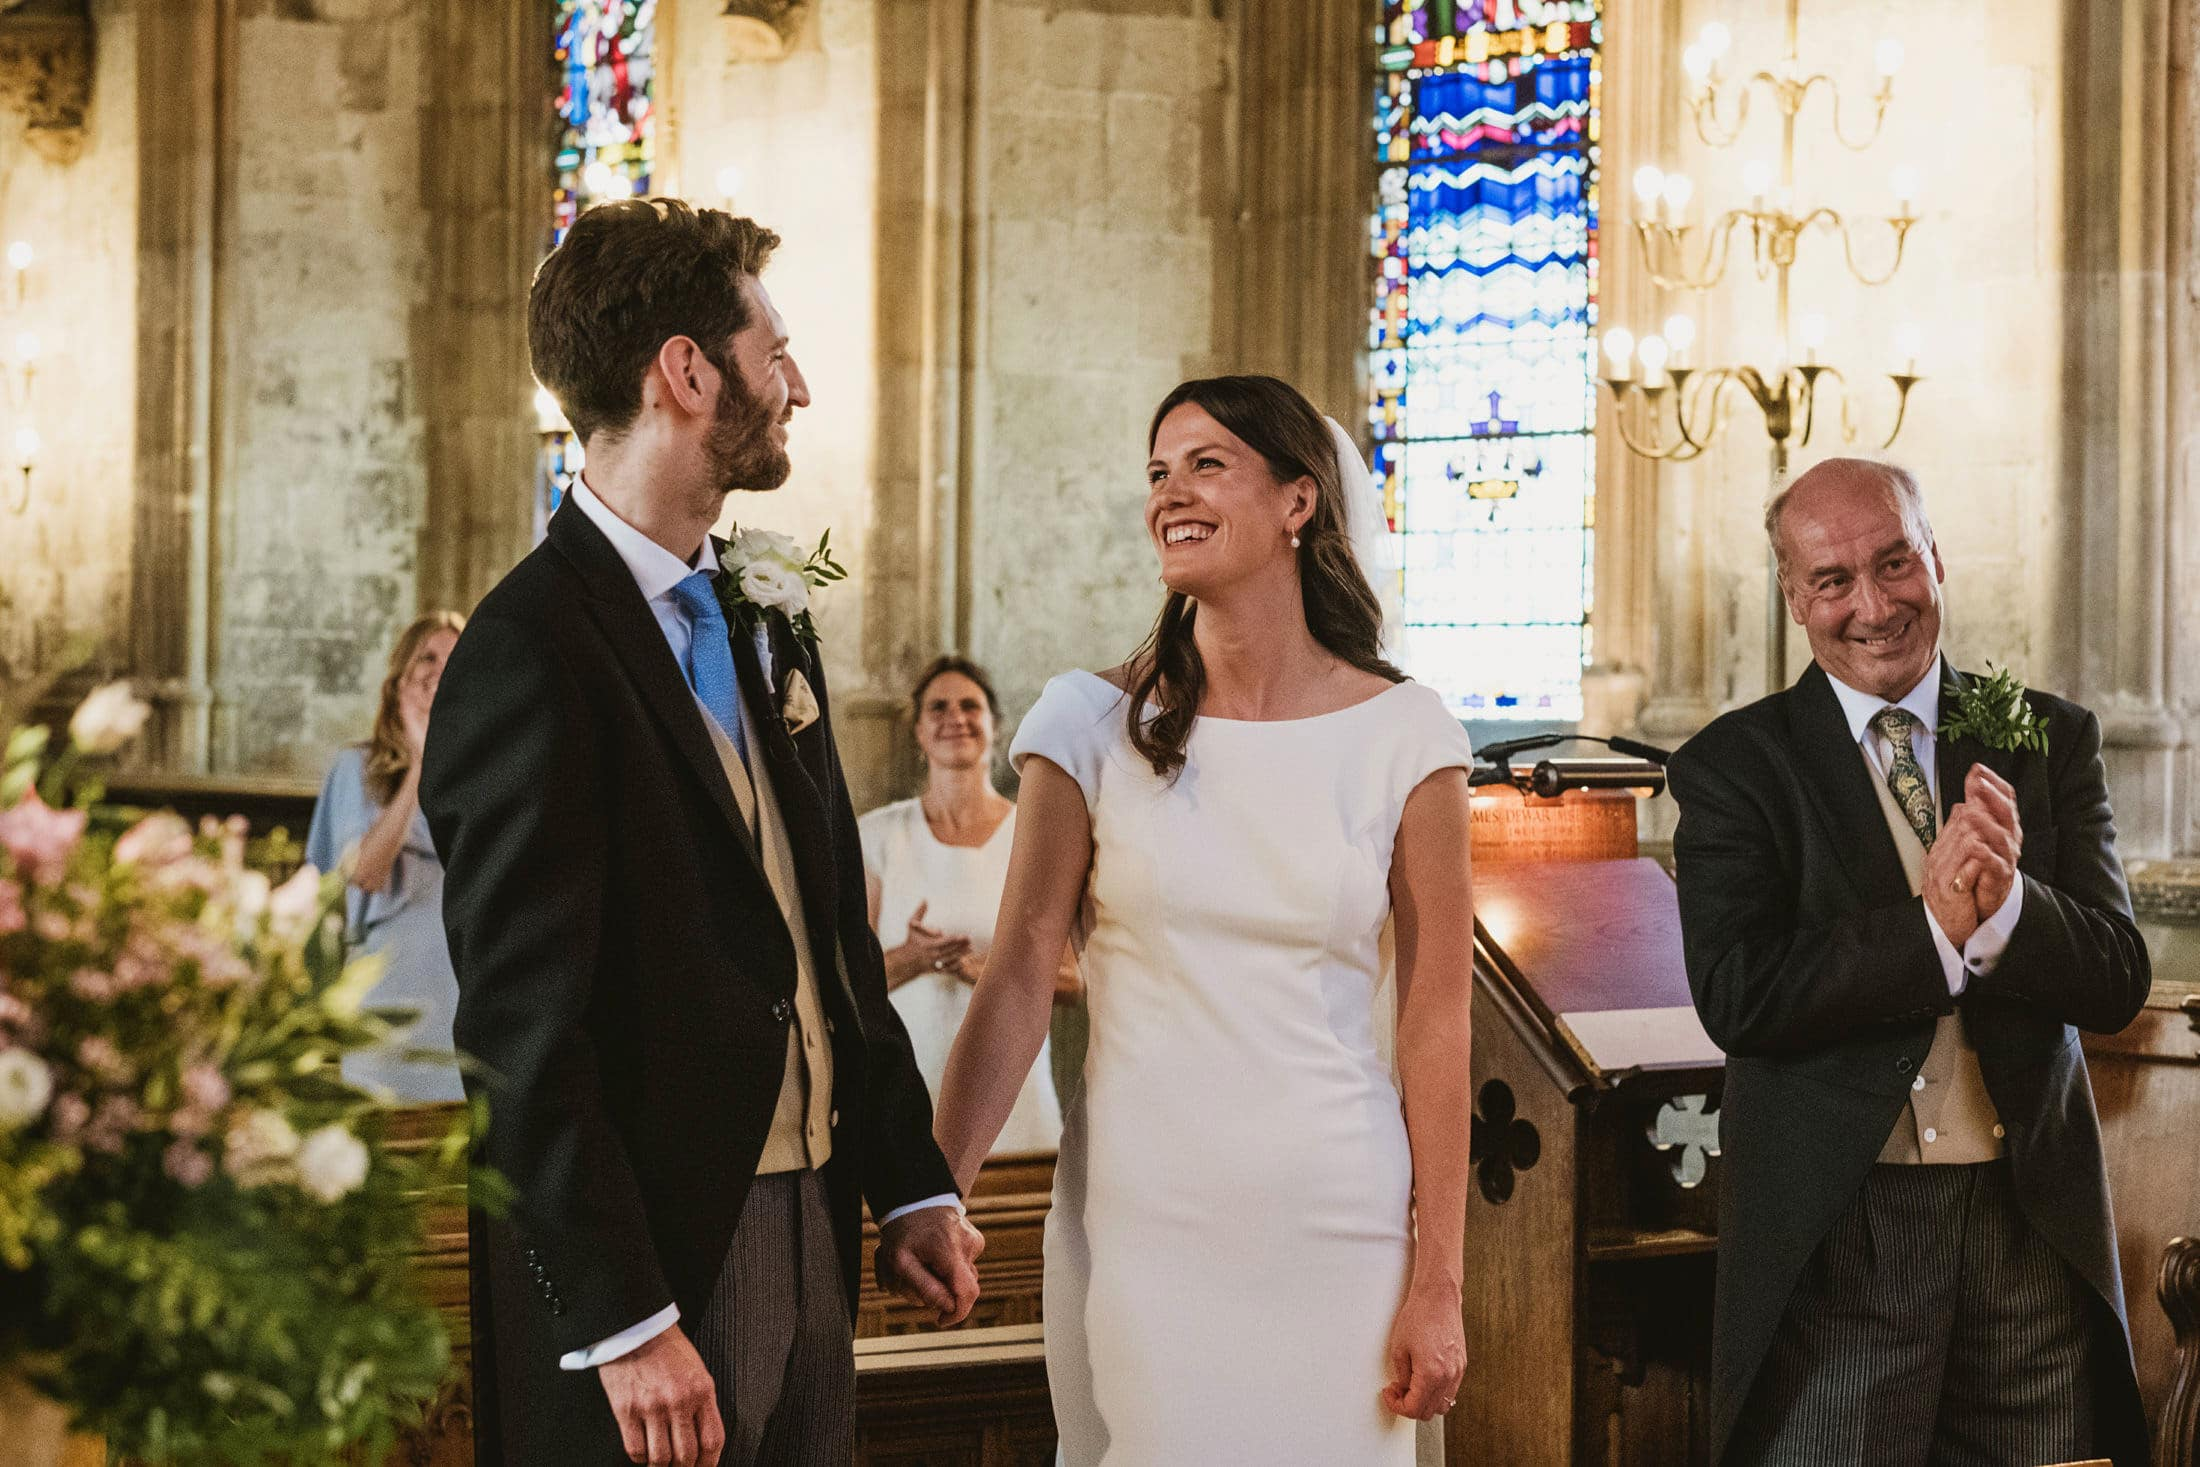 Groom (left) & bride (centre) smile and hold hands as they are pronounced husband and wife at a London church micro wedding. (Right) the father of the bride smiles and claps along with other guests framed in the background